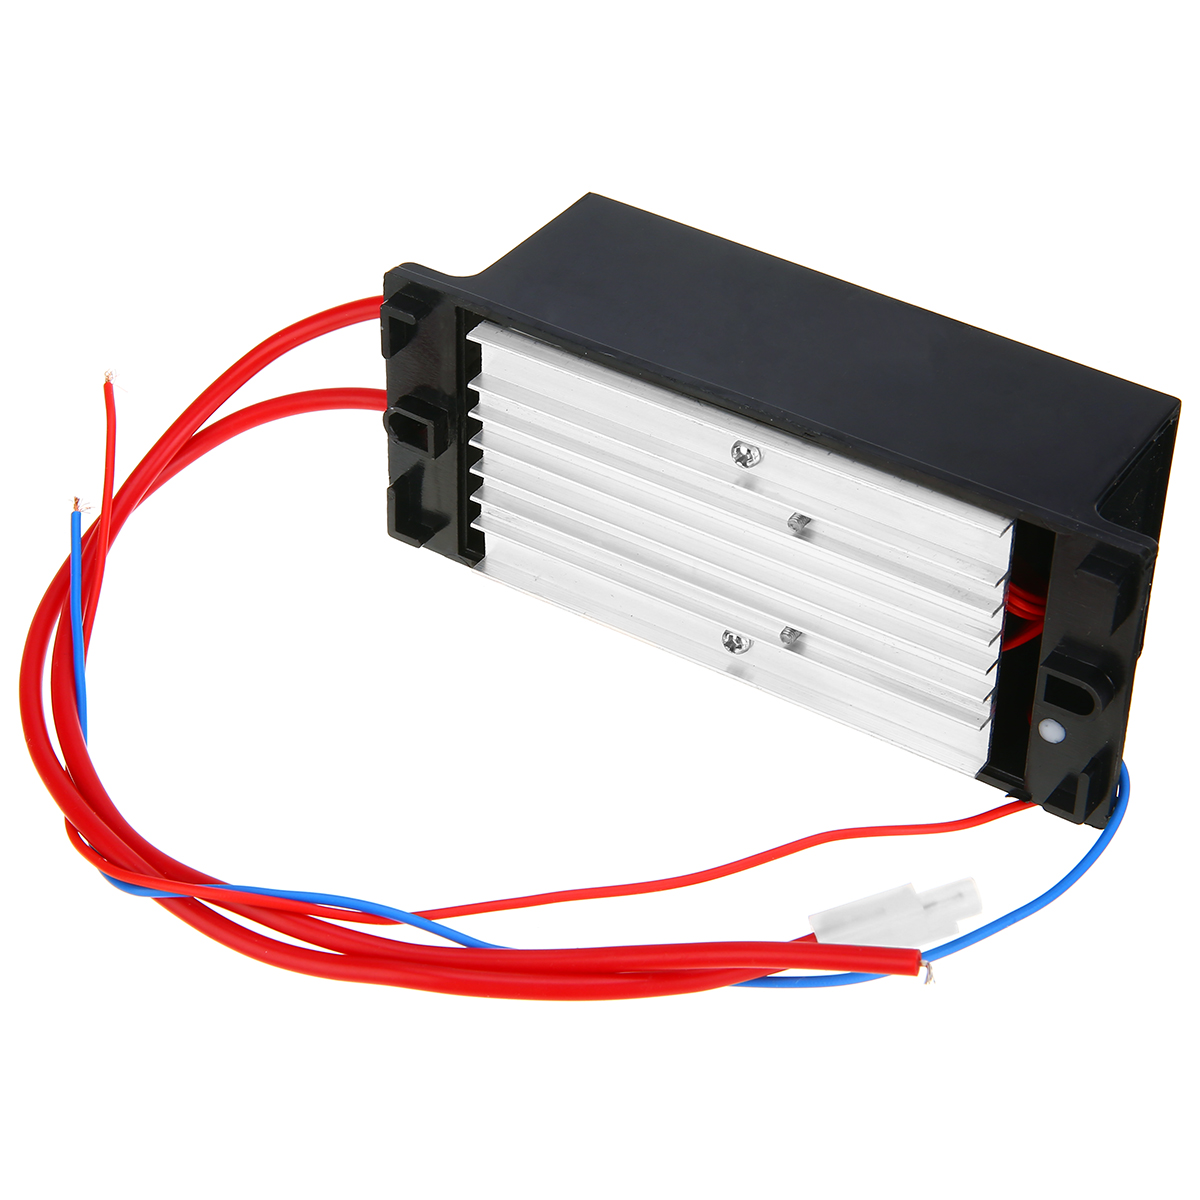 Ac220v 10g H Quartz Tube Ozone Generator Water Disinfection Air Details About Diy 220v 3g Circuit Board Purifier For Home